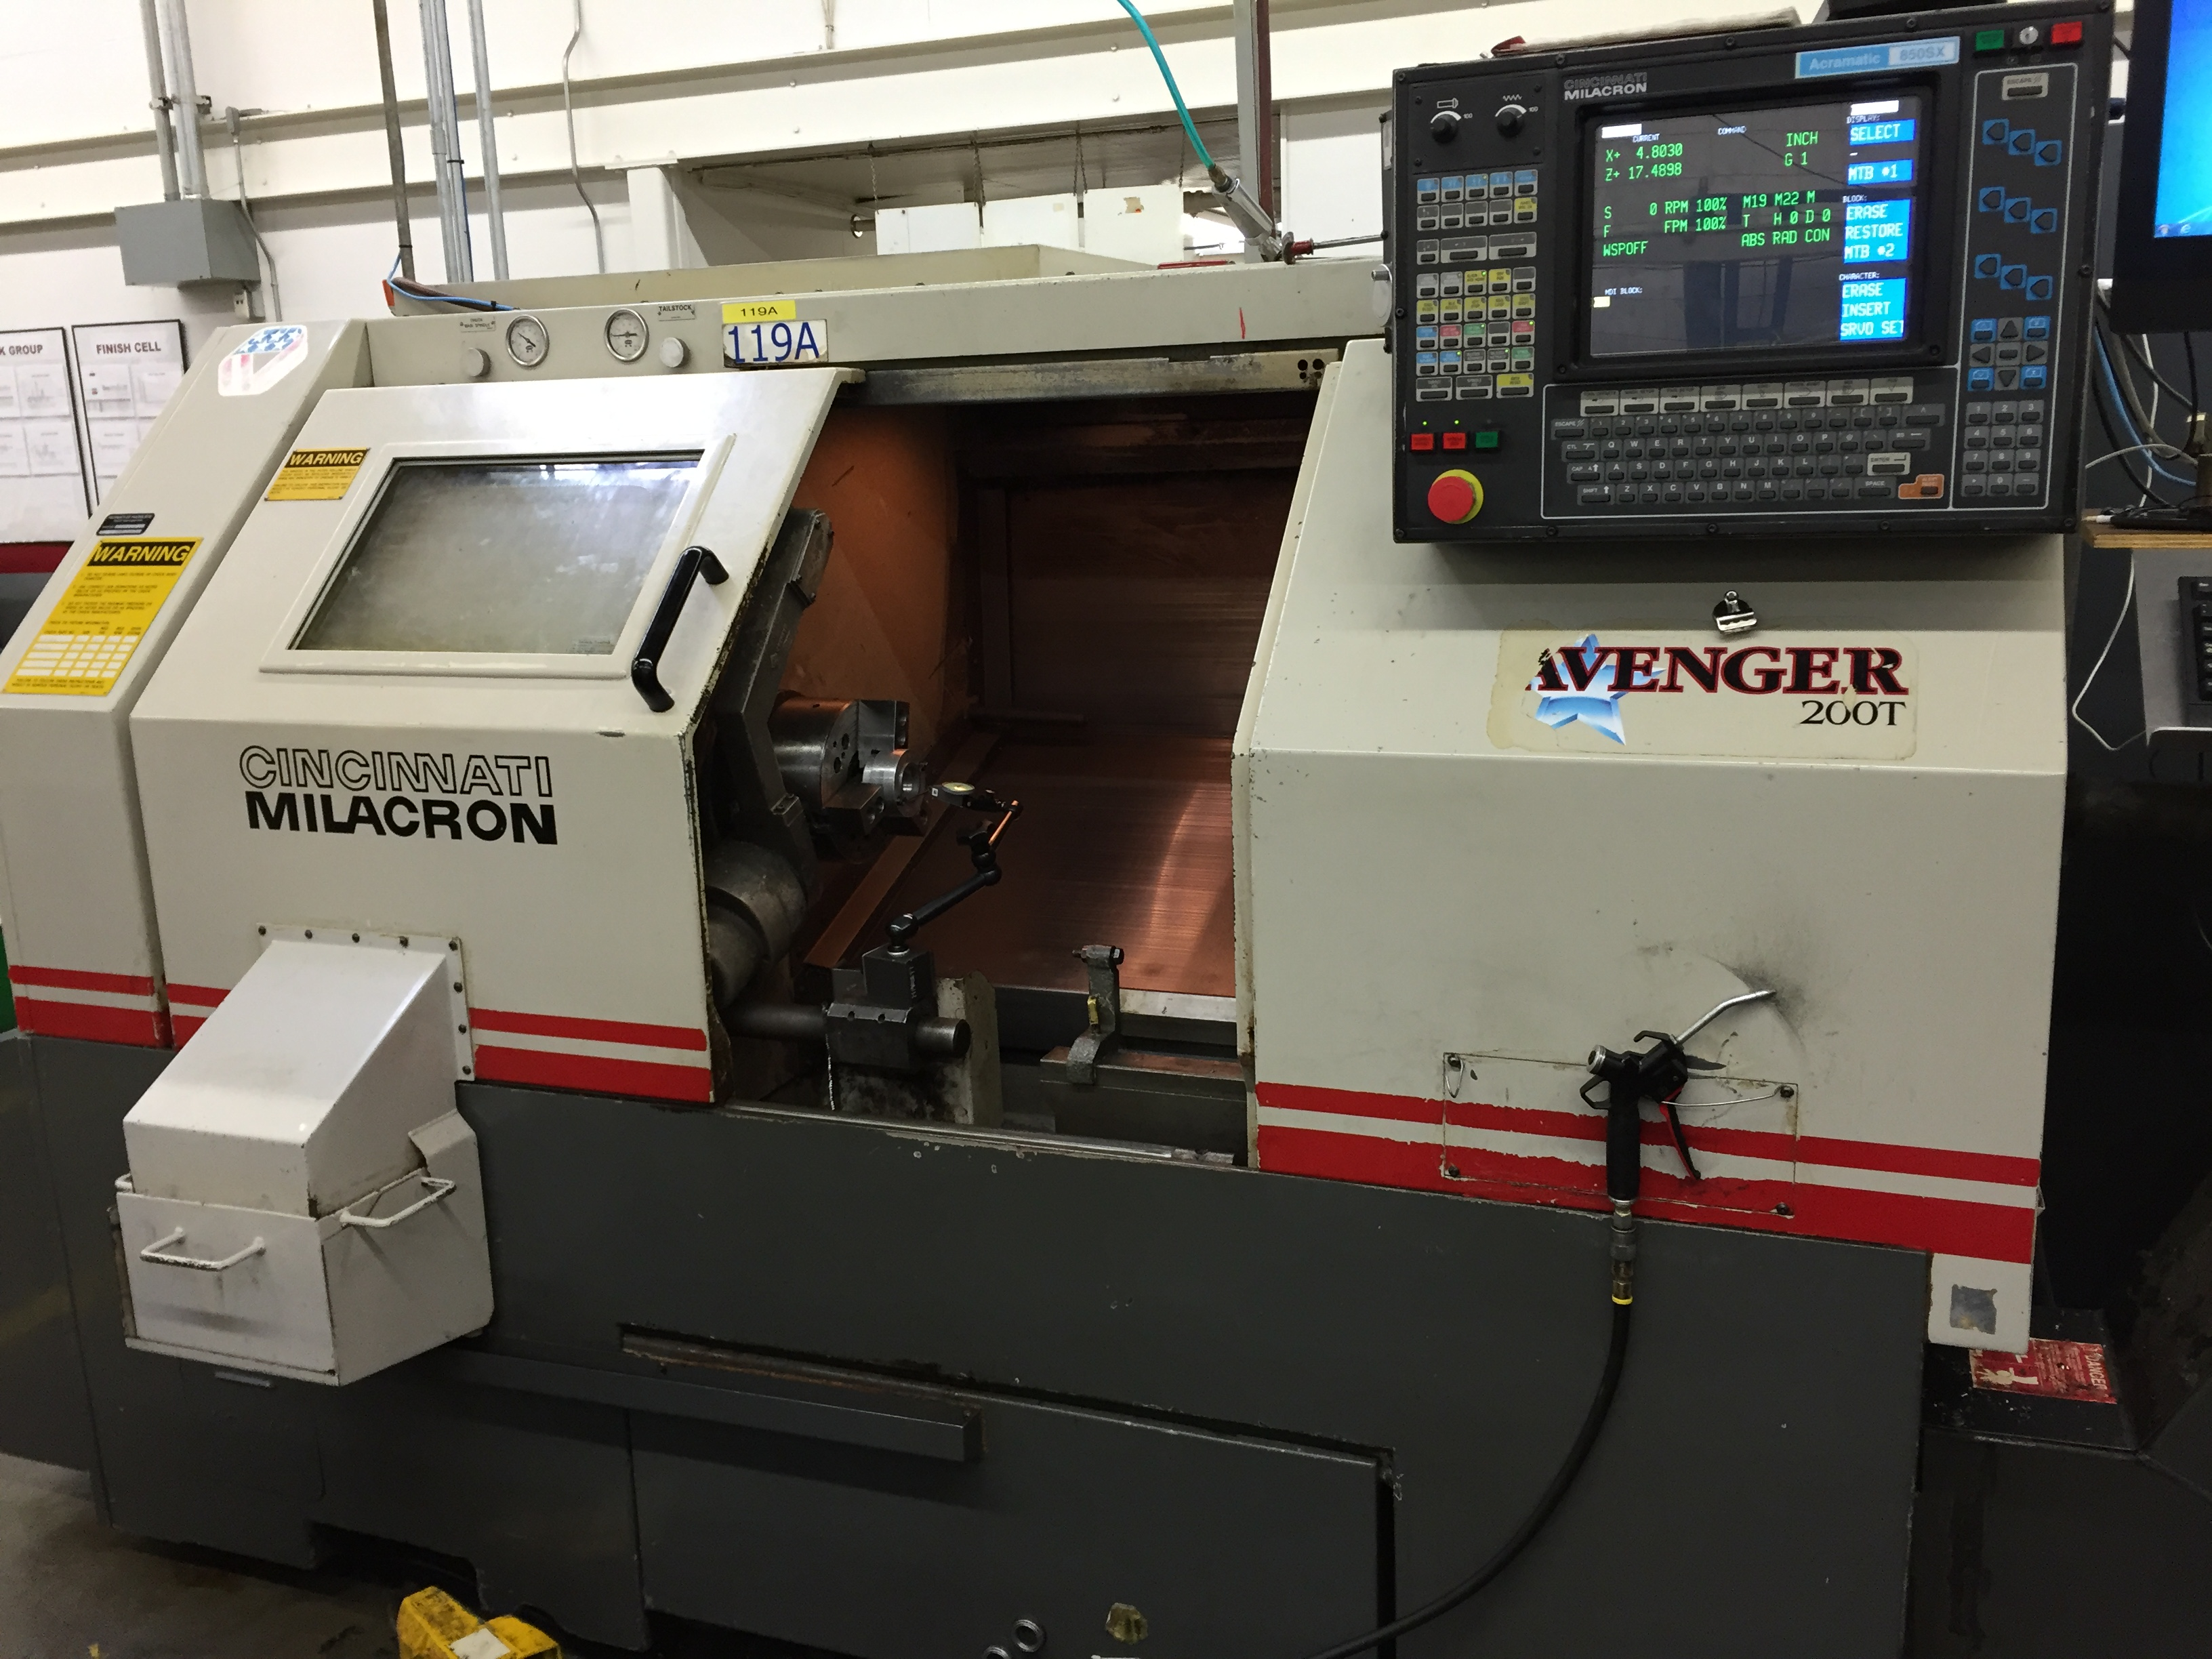 1998 Cincinnati Milacron 200T Avenger Turning Center